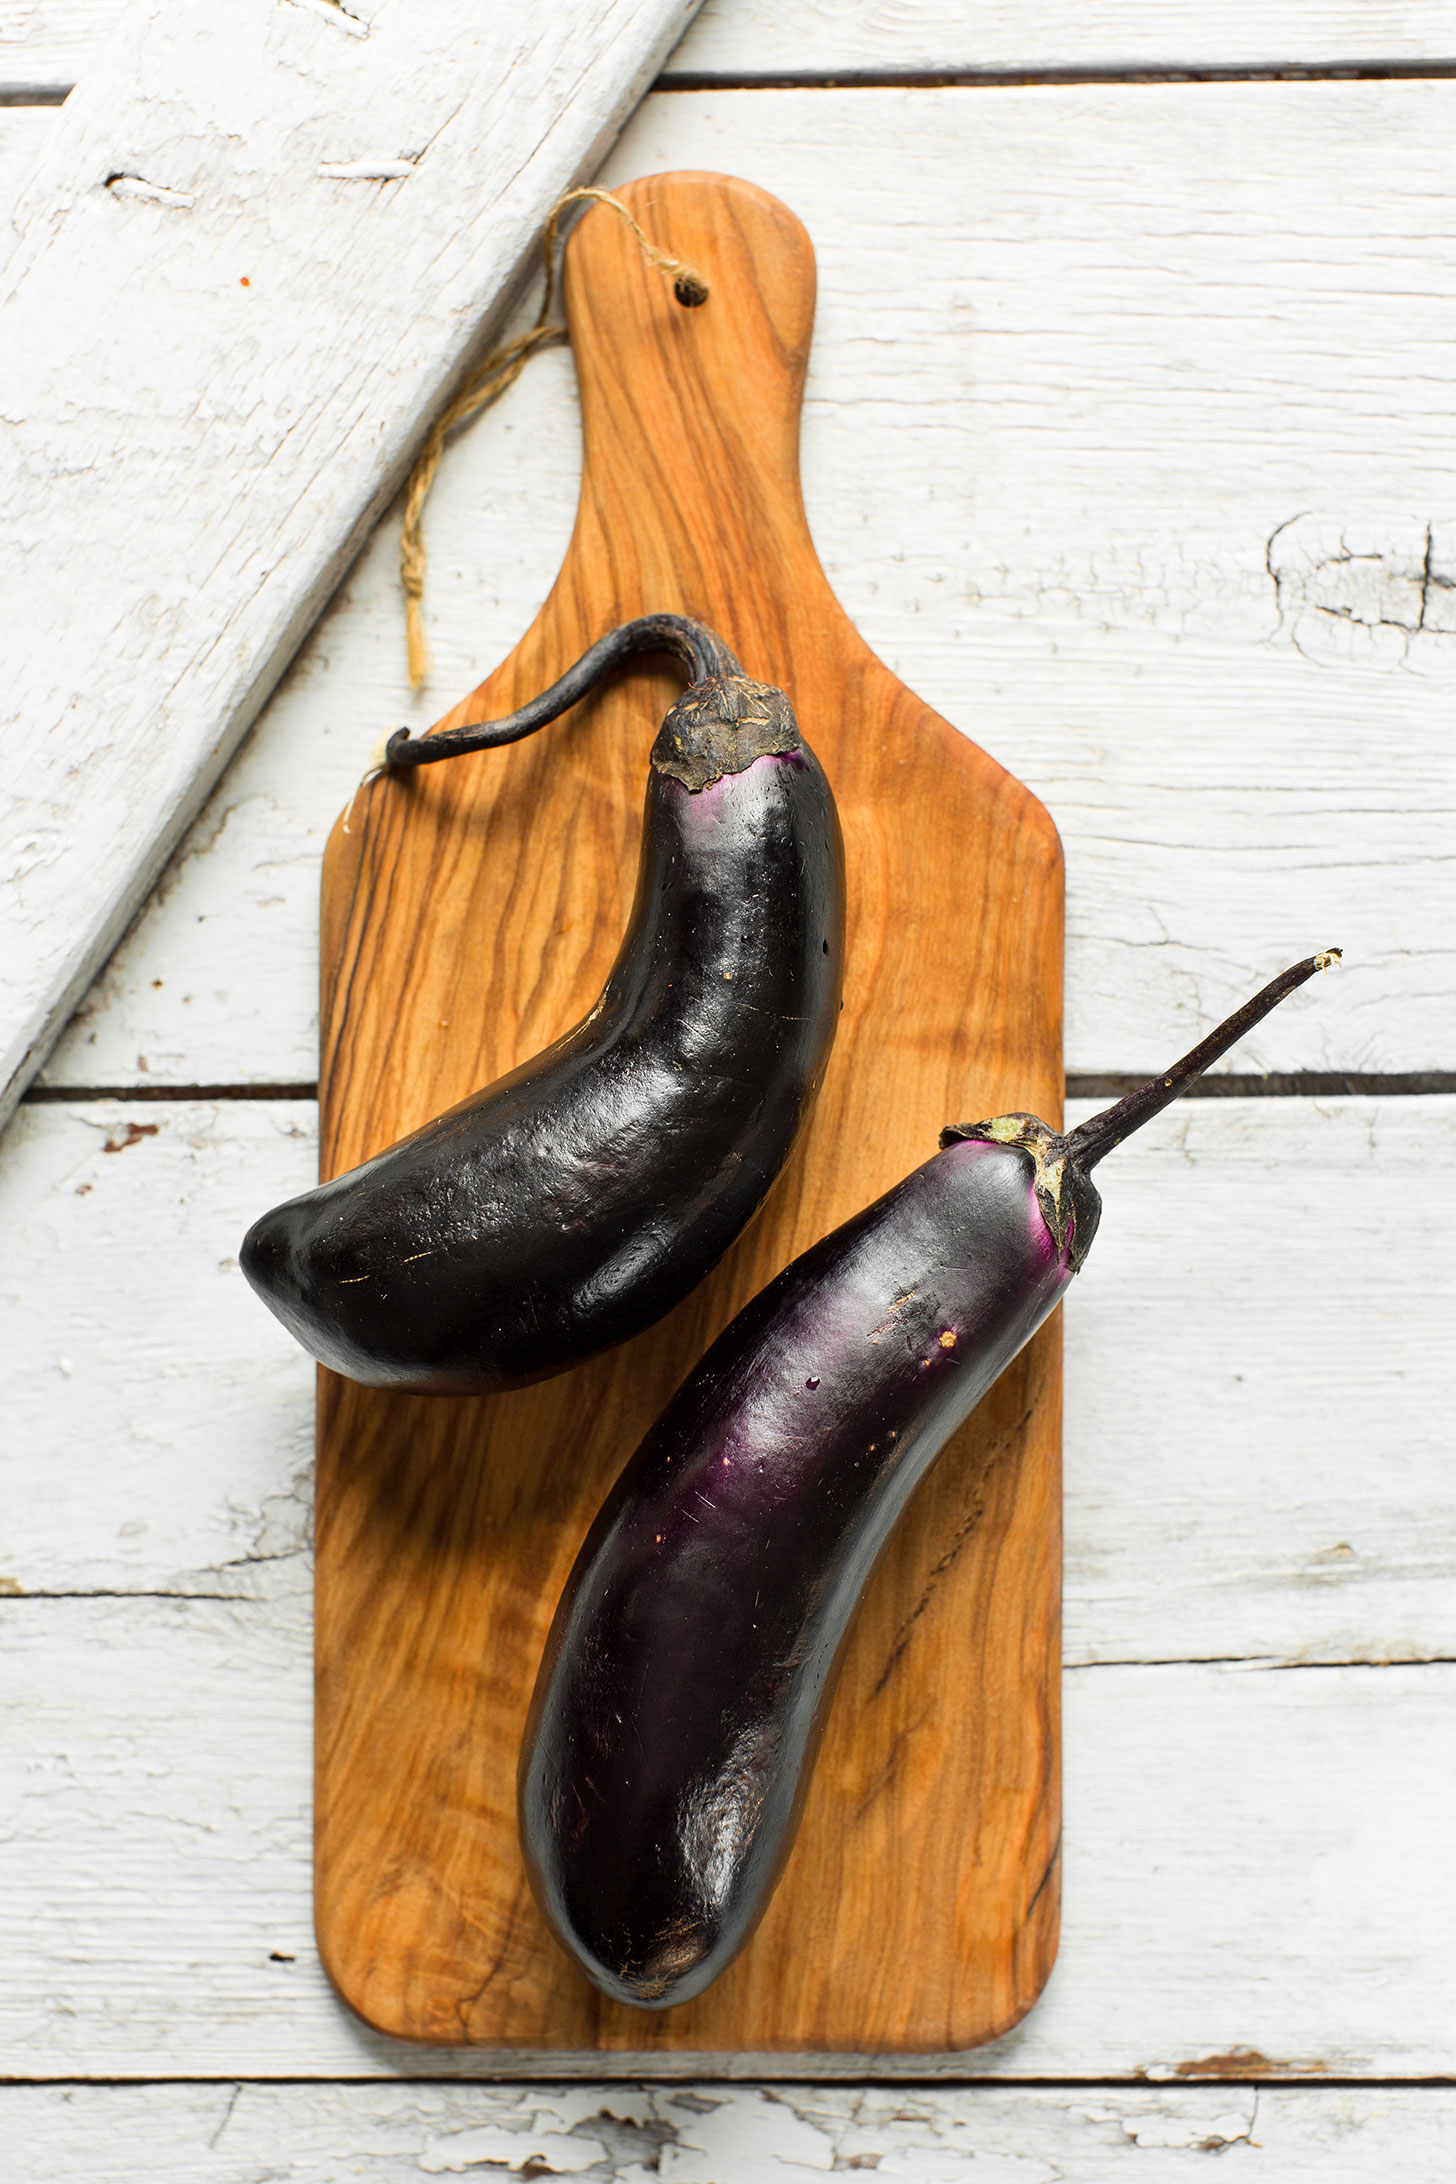 Fresh eggplants on a cutting board ready to be made into Sesame Stir-Fried Eggplant